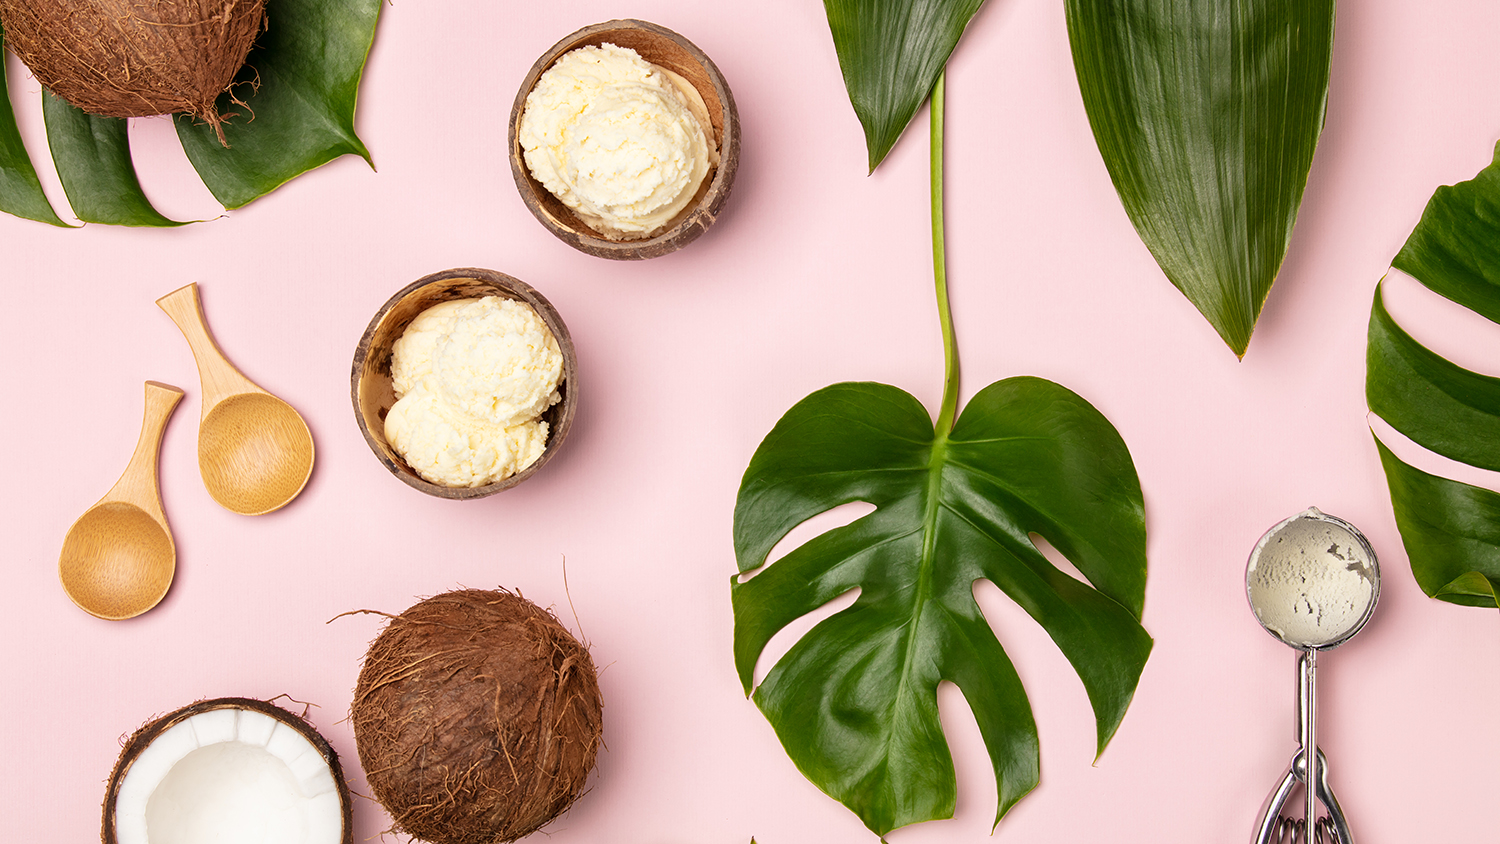 coconut-ice-cream-WU5TM7R.jpg